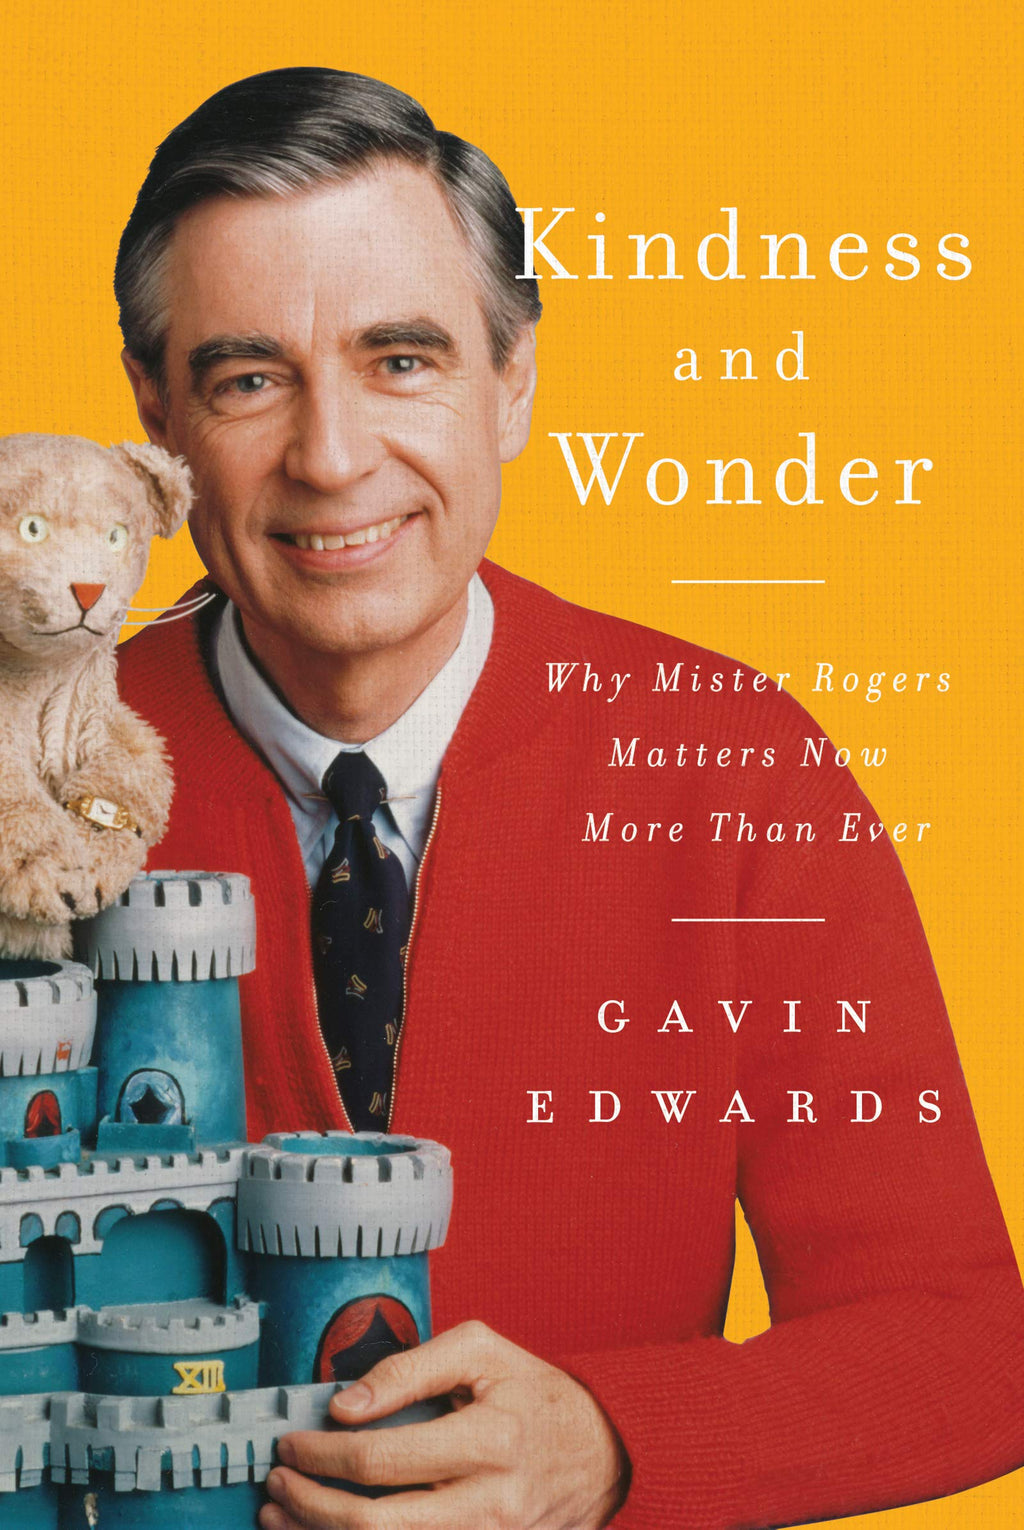 Kindess and Wonder: Why Mister Rogers Matters Now More Than Ever